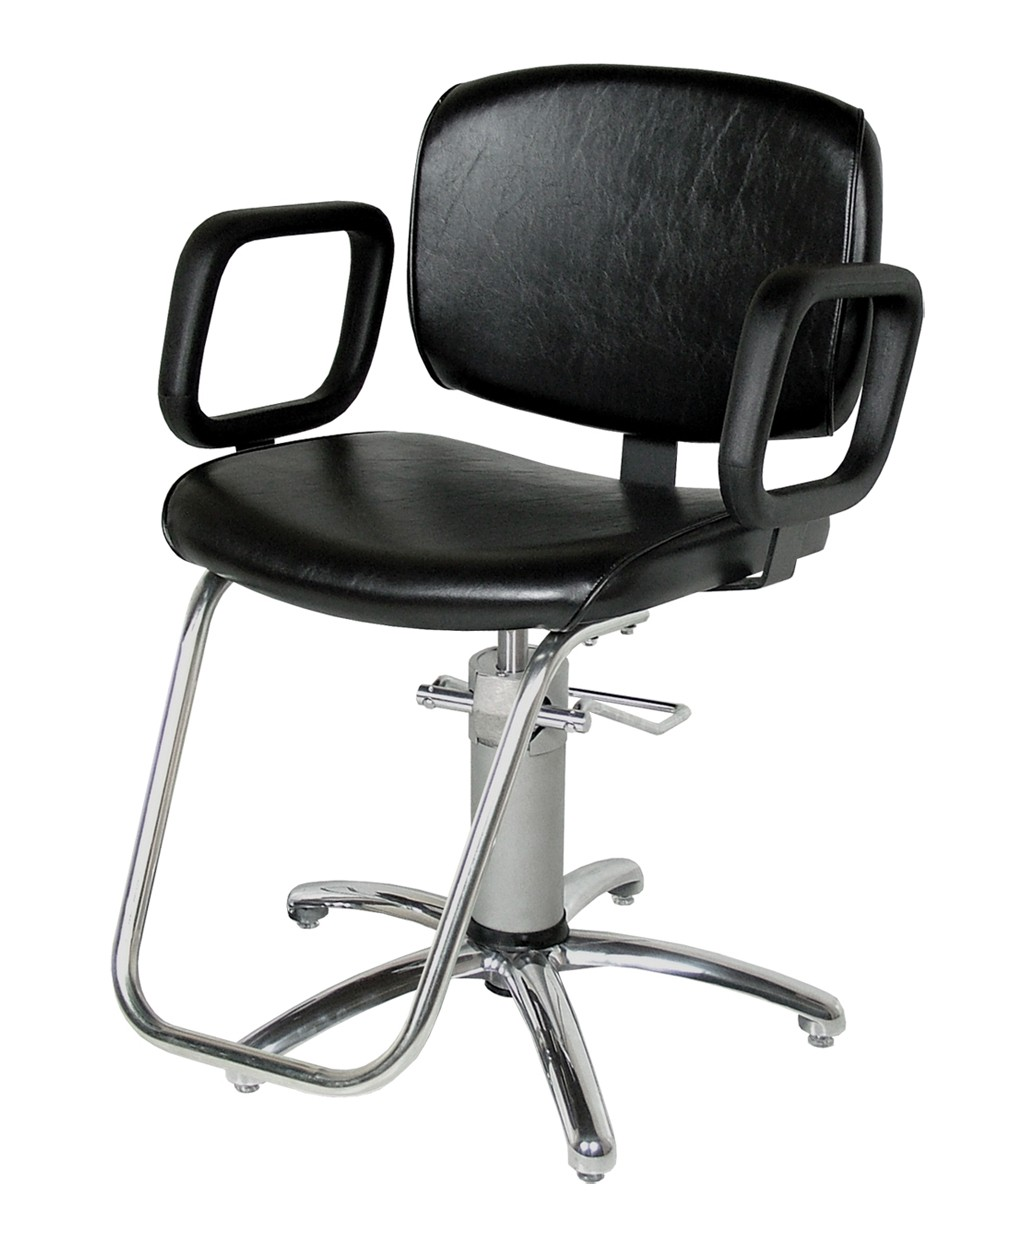 Collins QSE 1800 Styling Chair